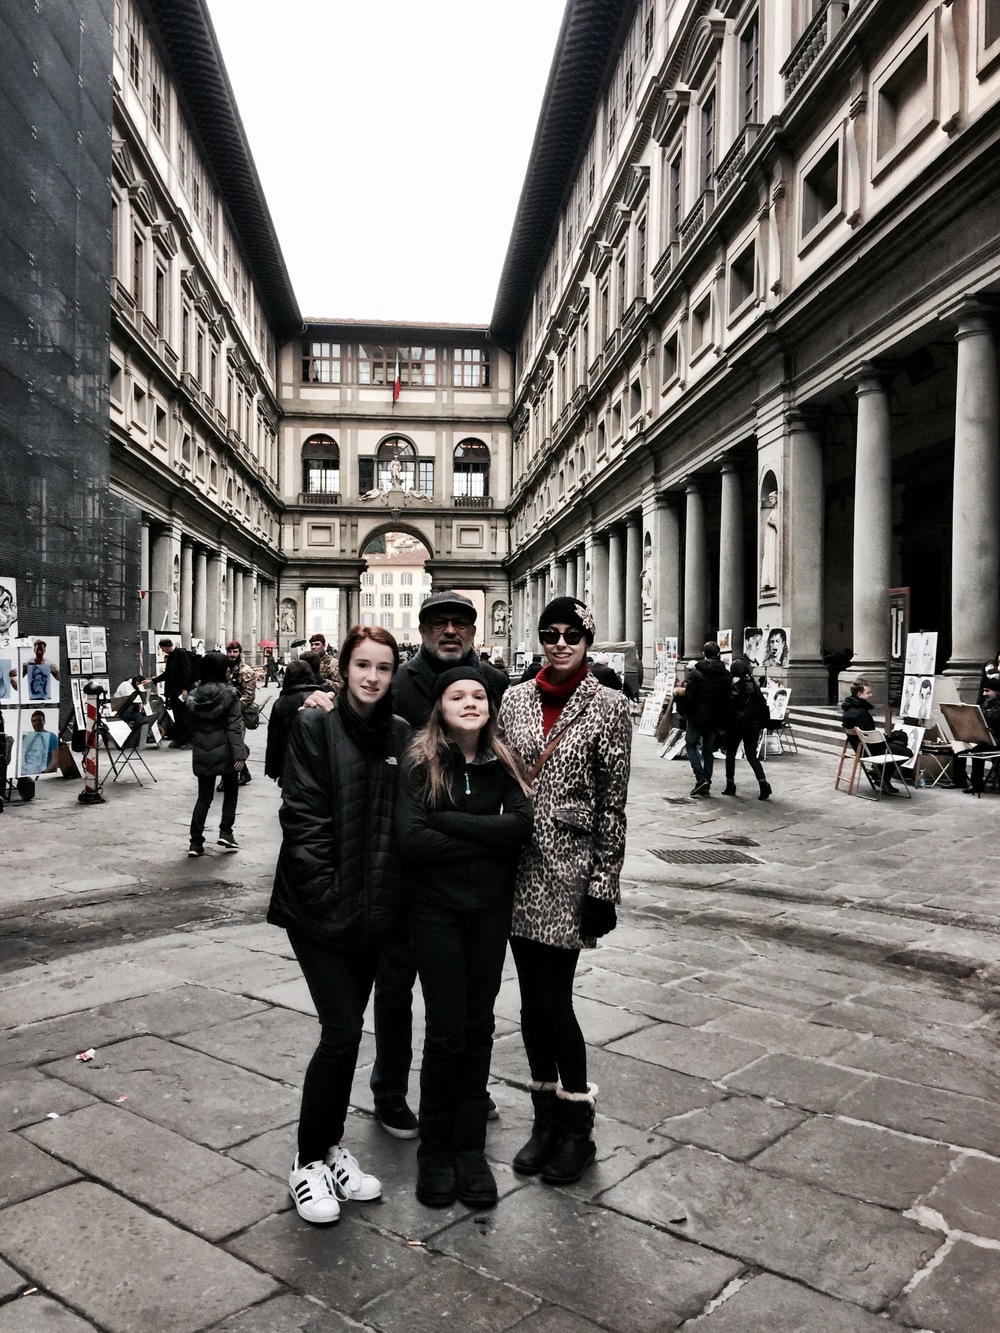 Me and my girls in Florence - New Years 2016